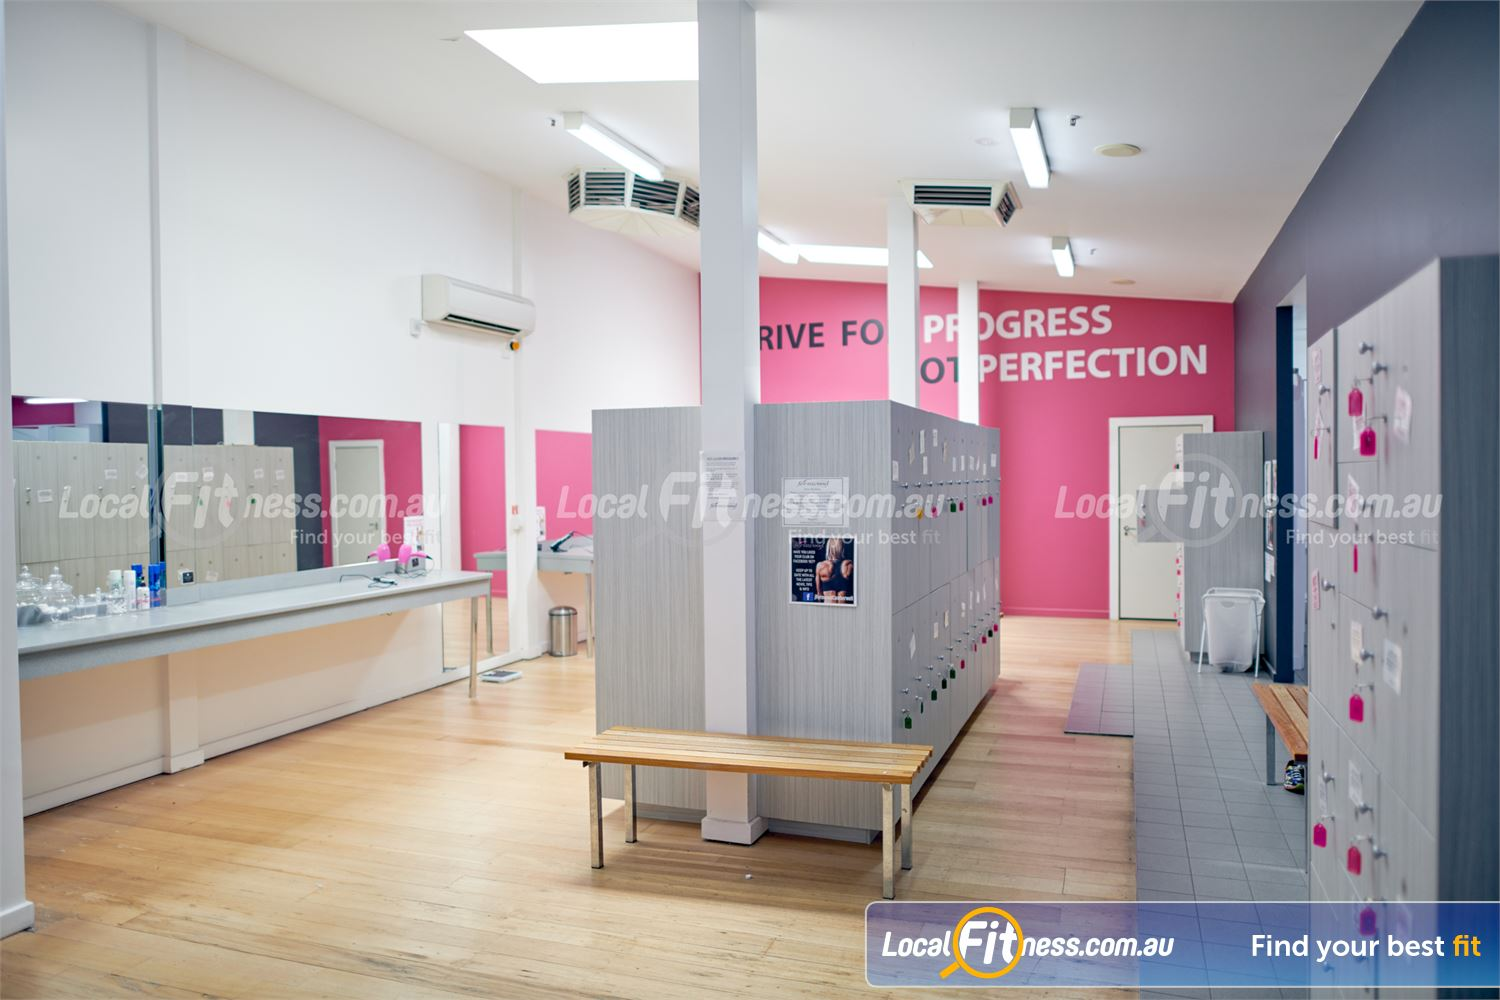 Fernwood Fitness Camberwell Complimentary toiletries and spacious locker facilities to store your belongings.